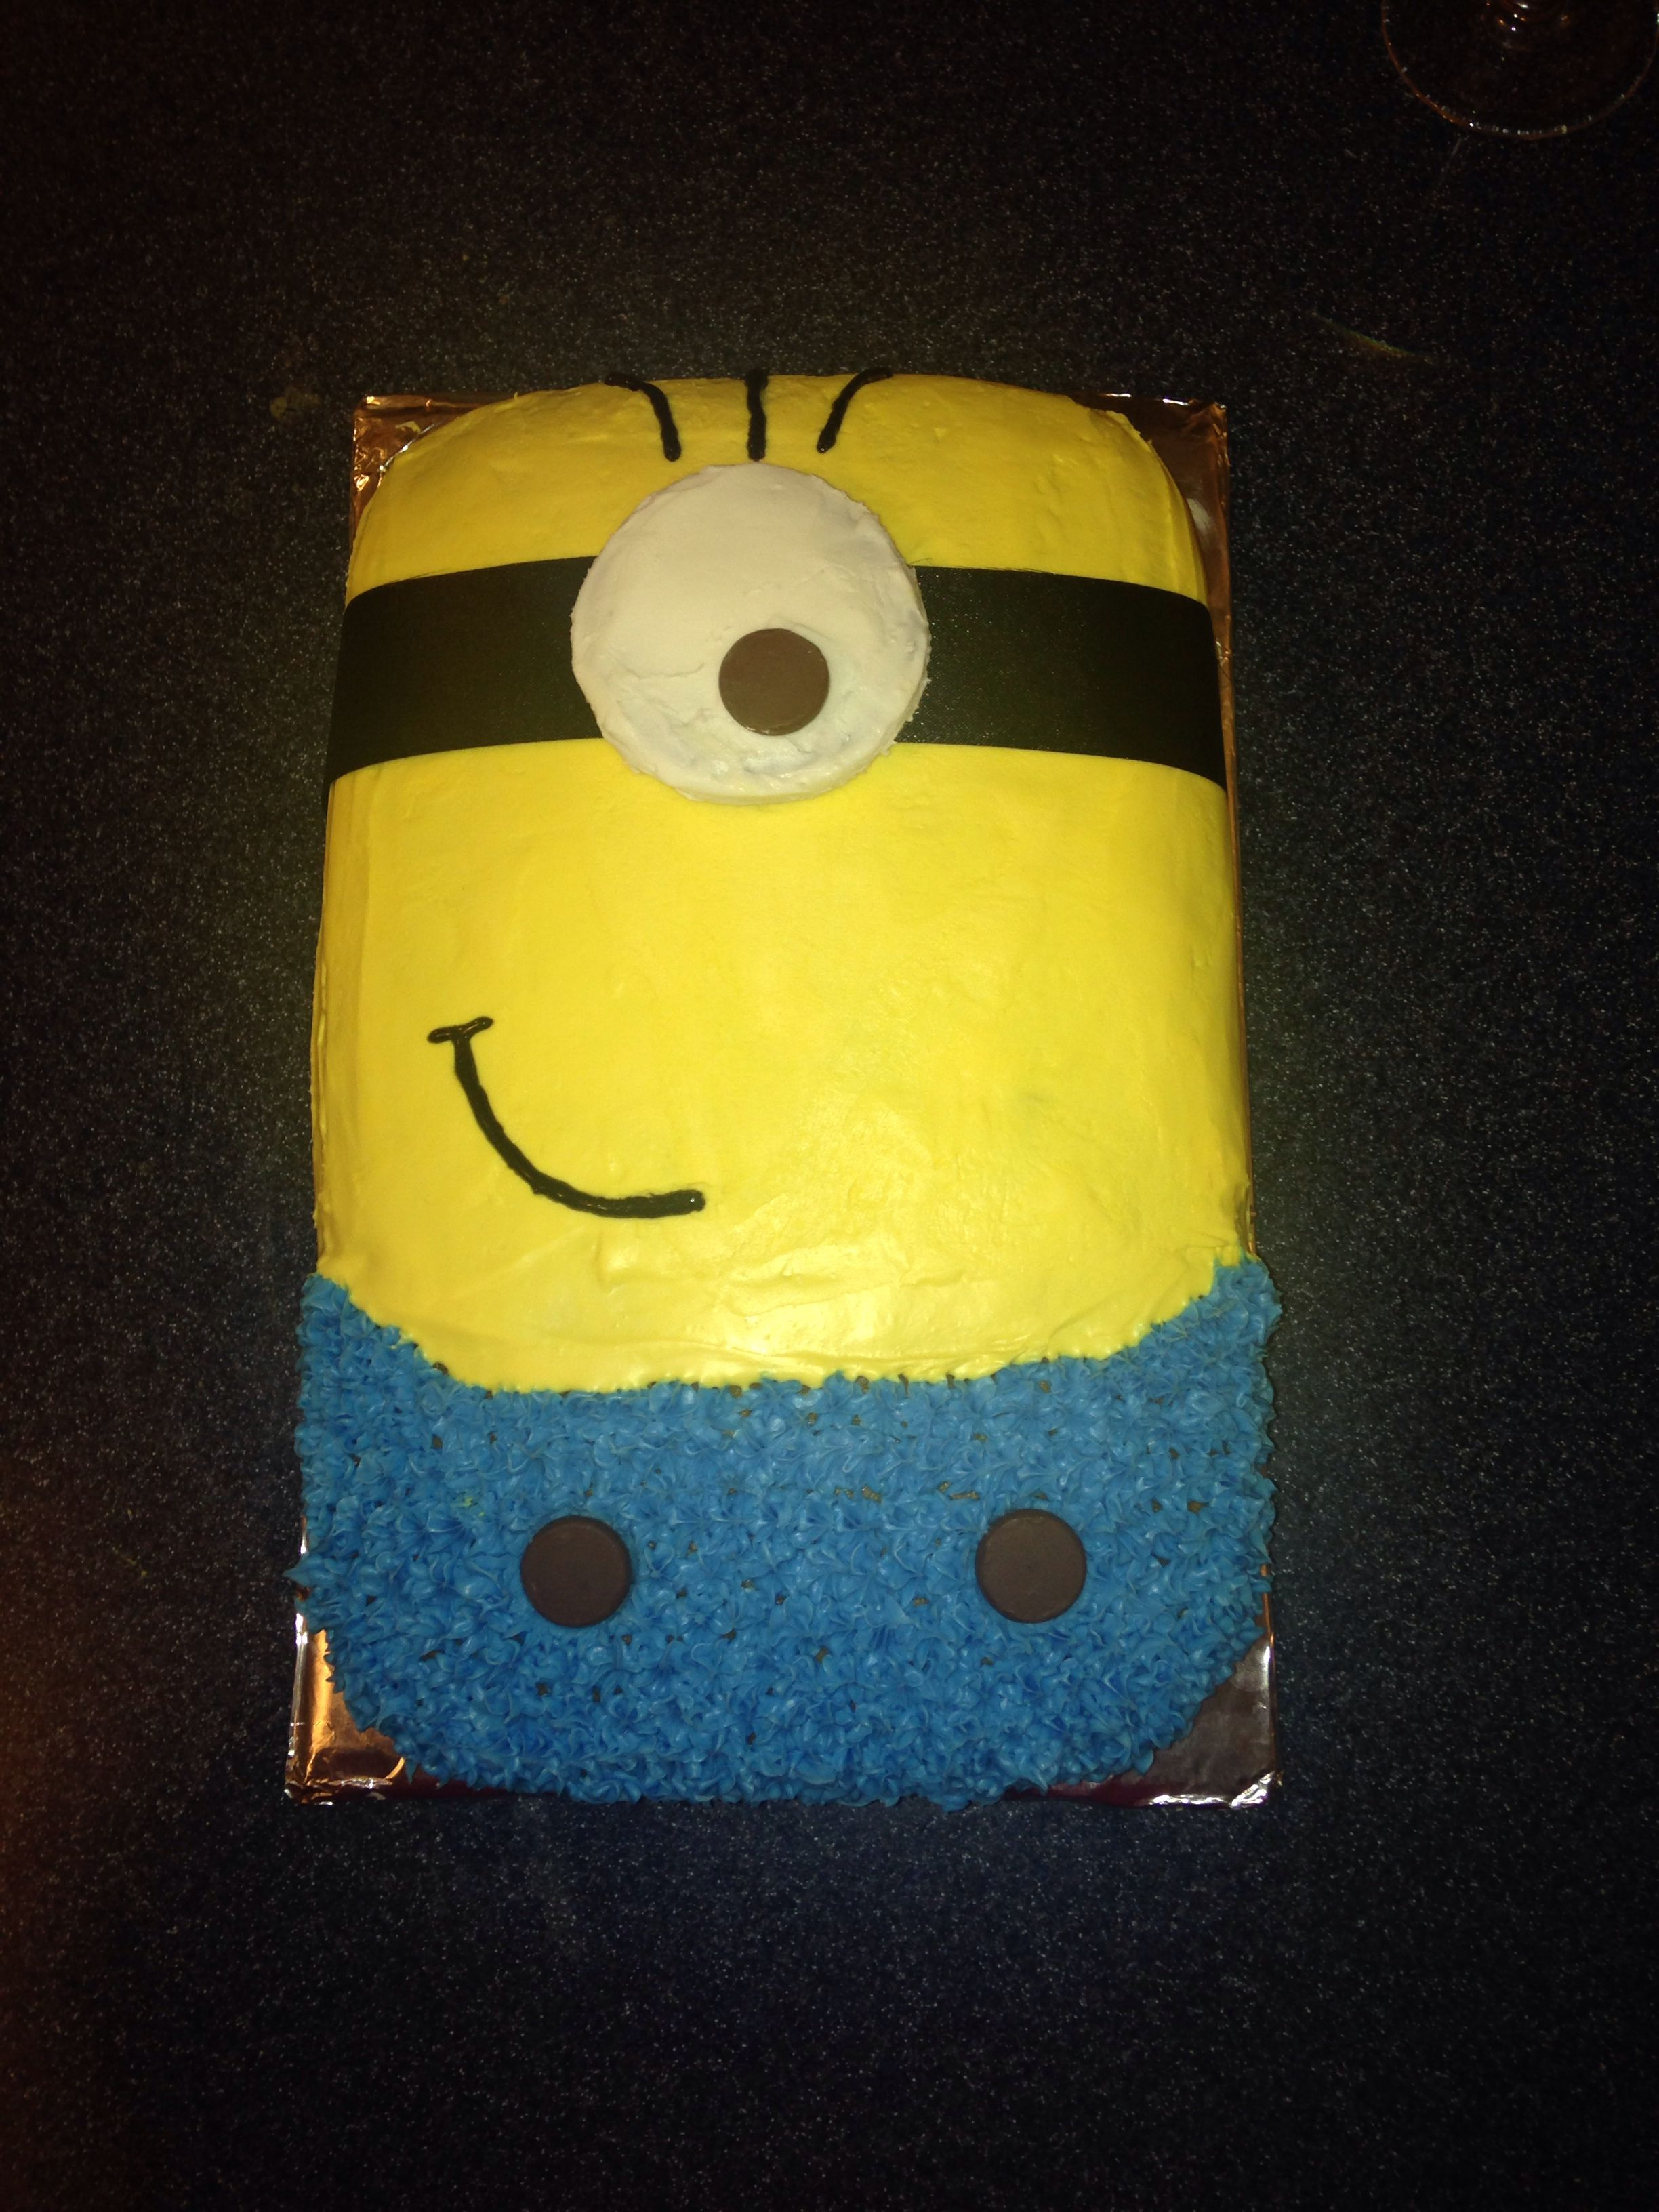 Minion Cake Rounded 9 X 13 Pan Hershey Kisses